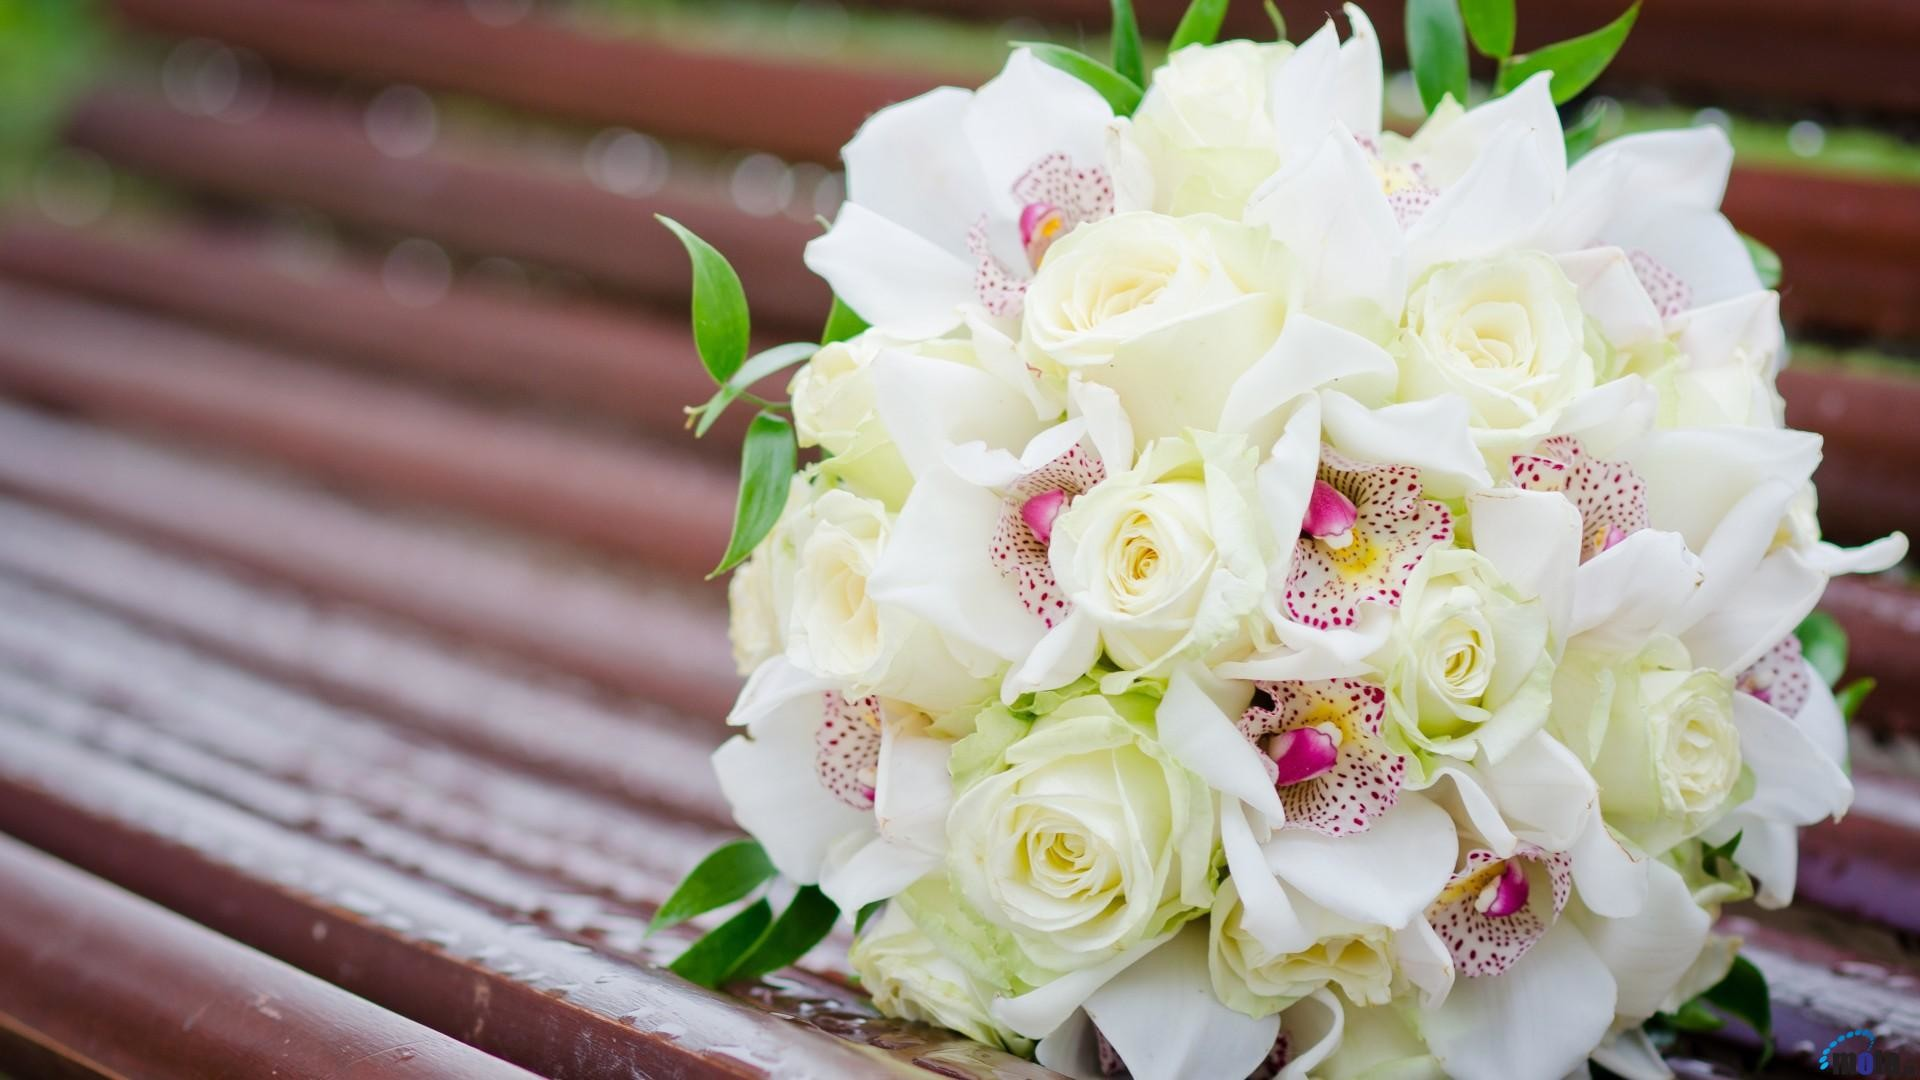 Res: 1920x1080, White roses and other flowers in a wedding bouquet